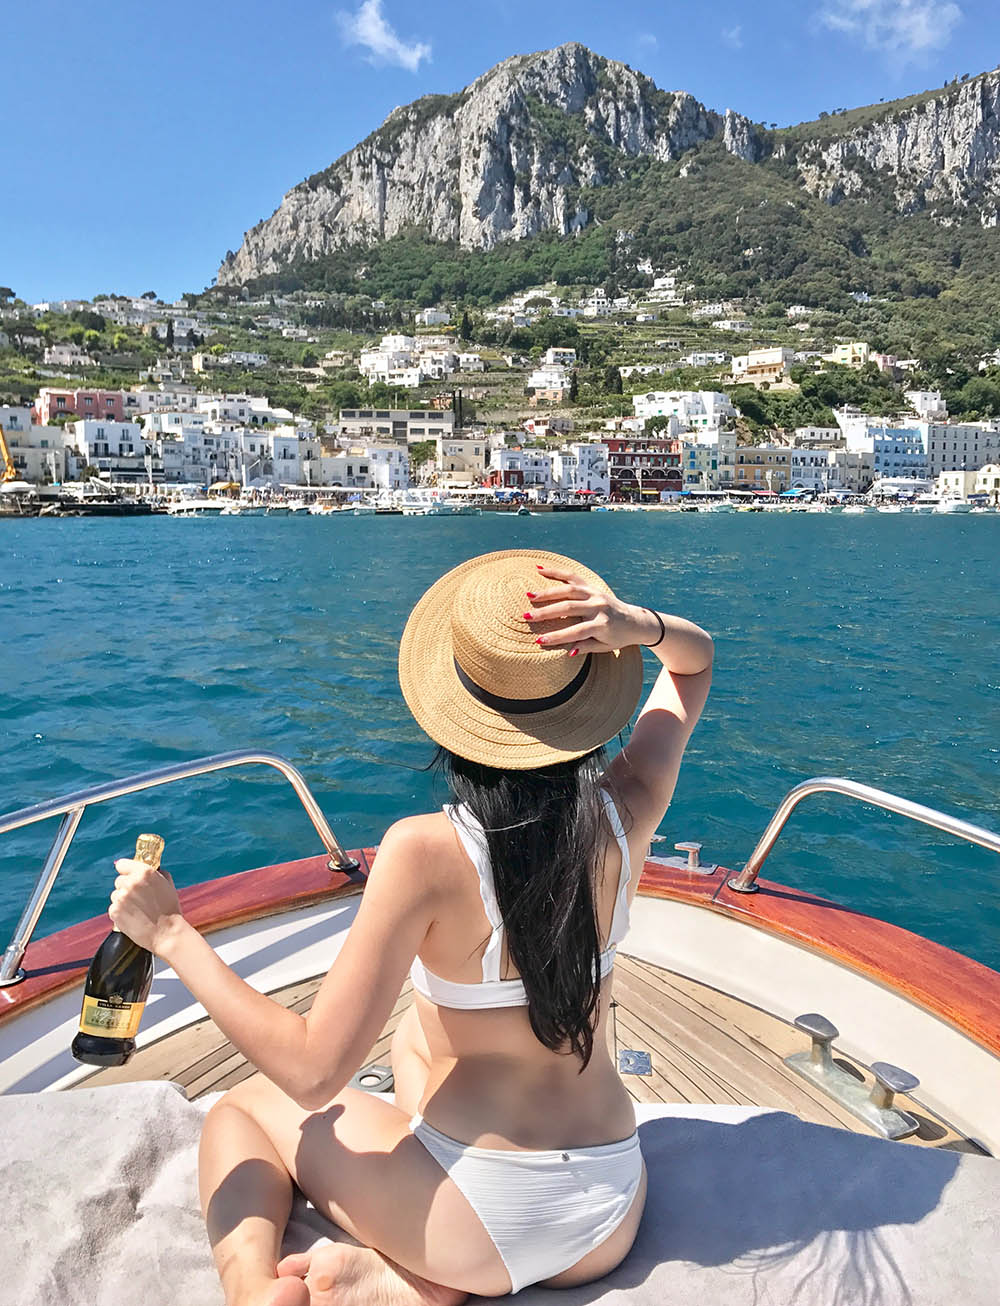 Tina Travels: Best Way to See Capri - Private Boat Tour in Capri, Italy | Of Leather and Lace